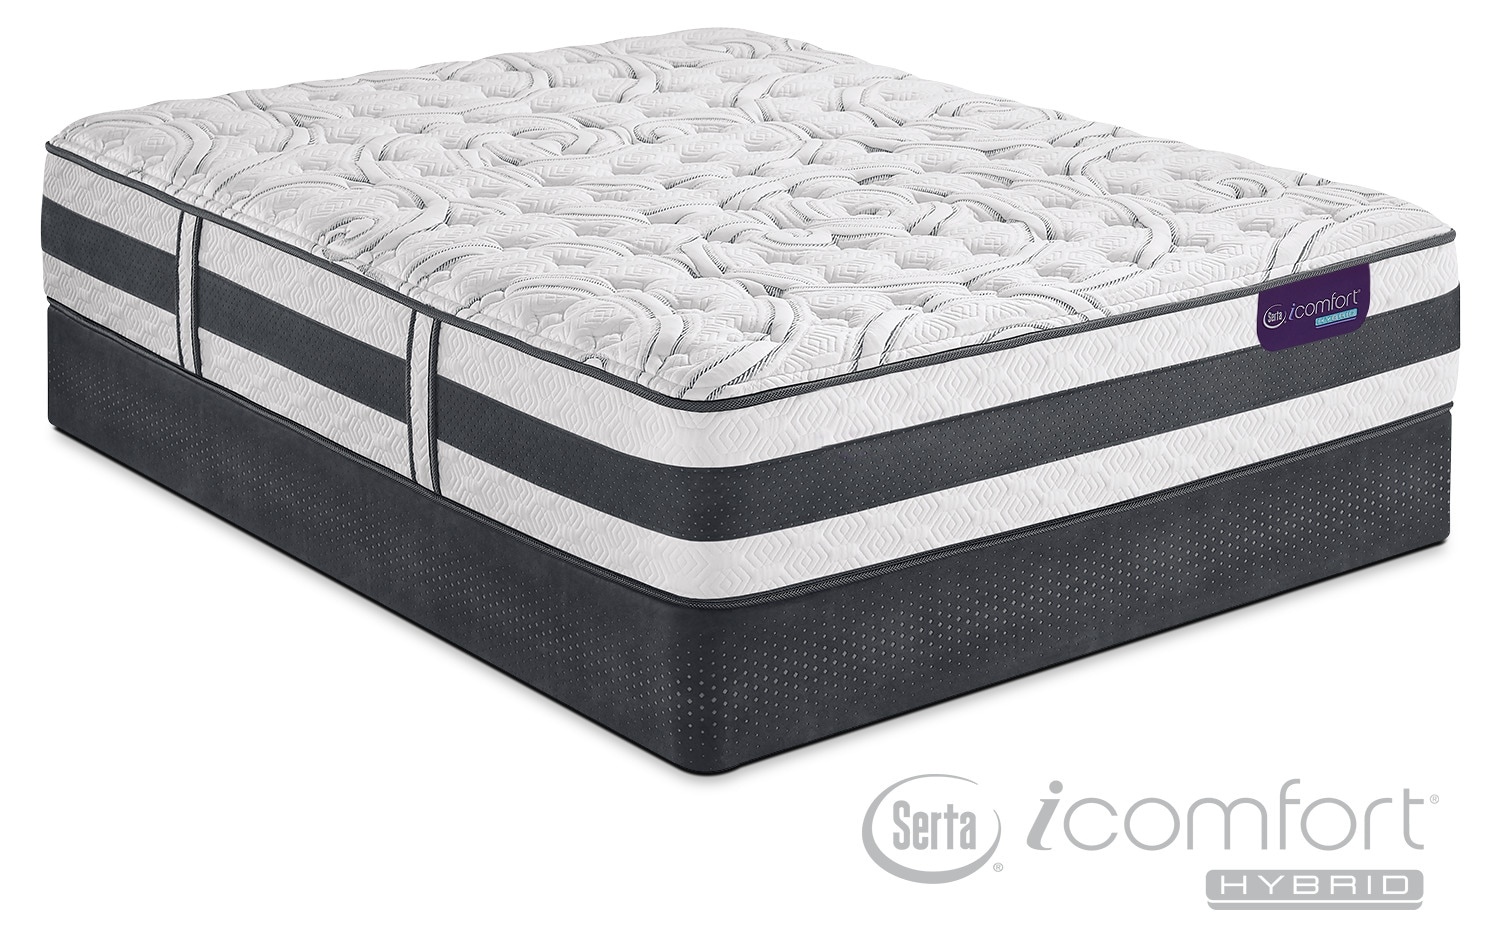 Applause ii firm twin xl mattress and foundation set american signature furniture Twin mattress xl